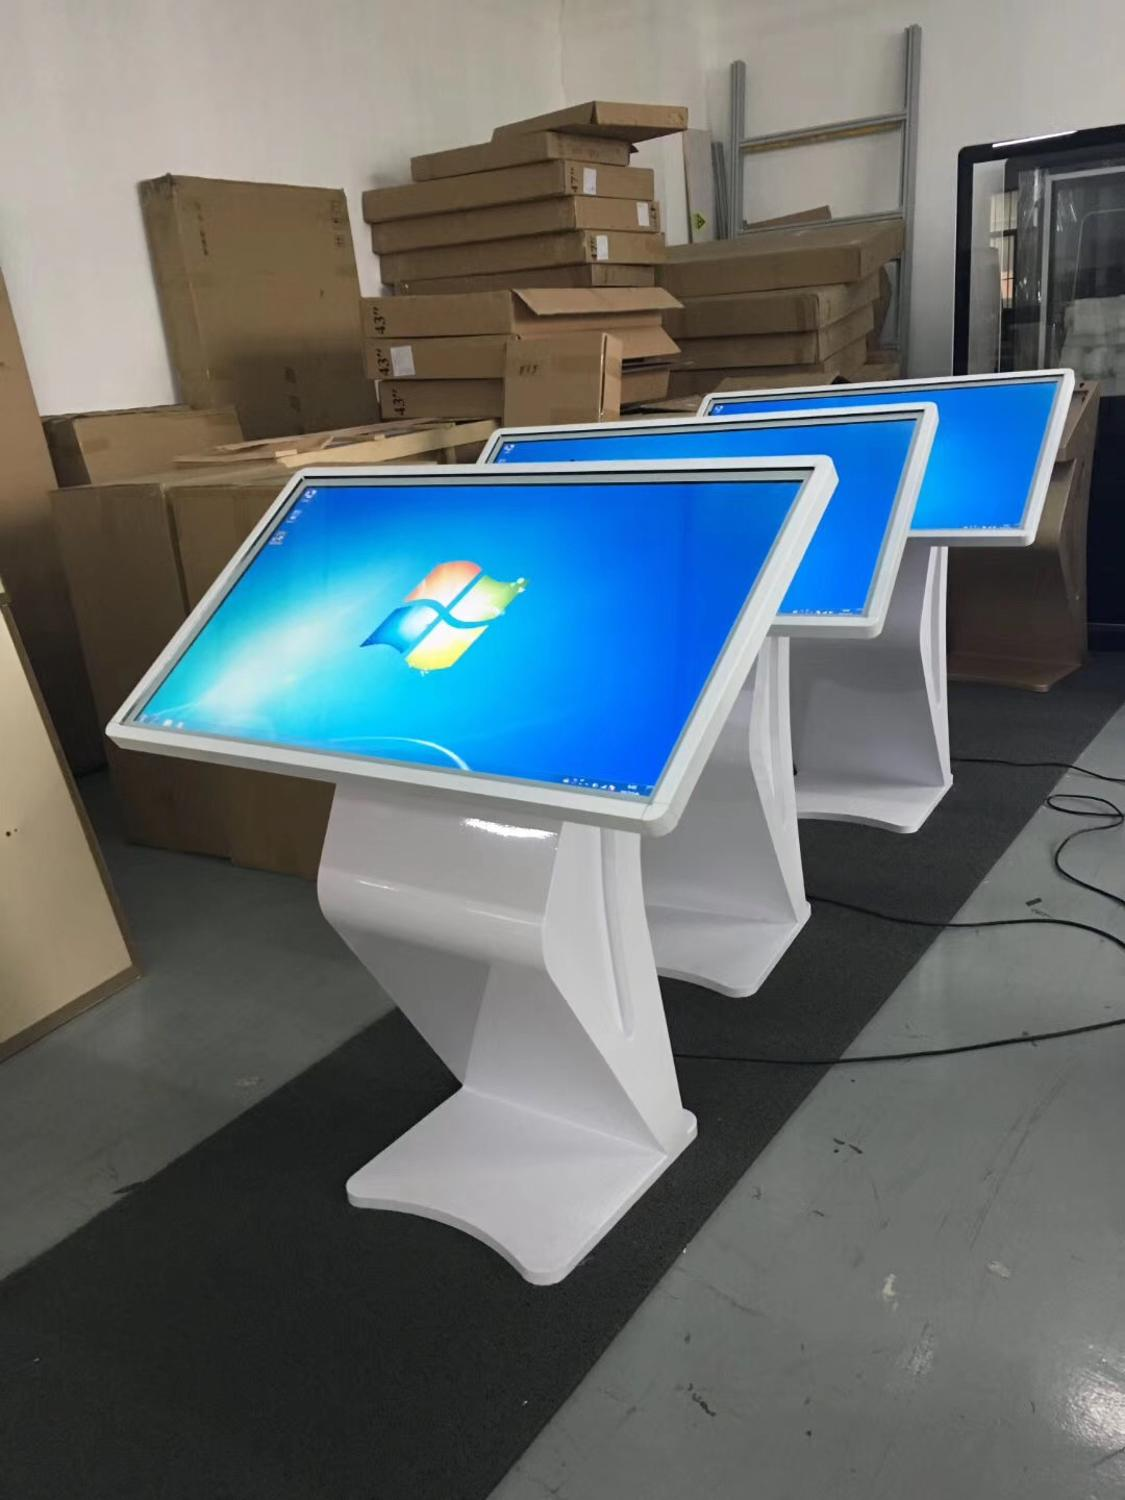 55 Inch Standalone Floor Map Guide Table Touch Lcd Advertising Screen Kiosk With CPU I5 RAM 4GB PC Built In